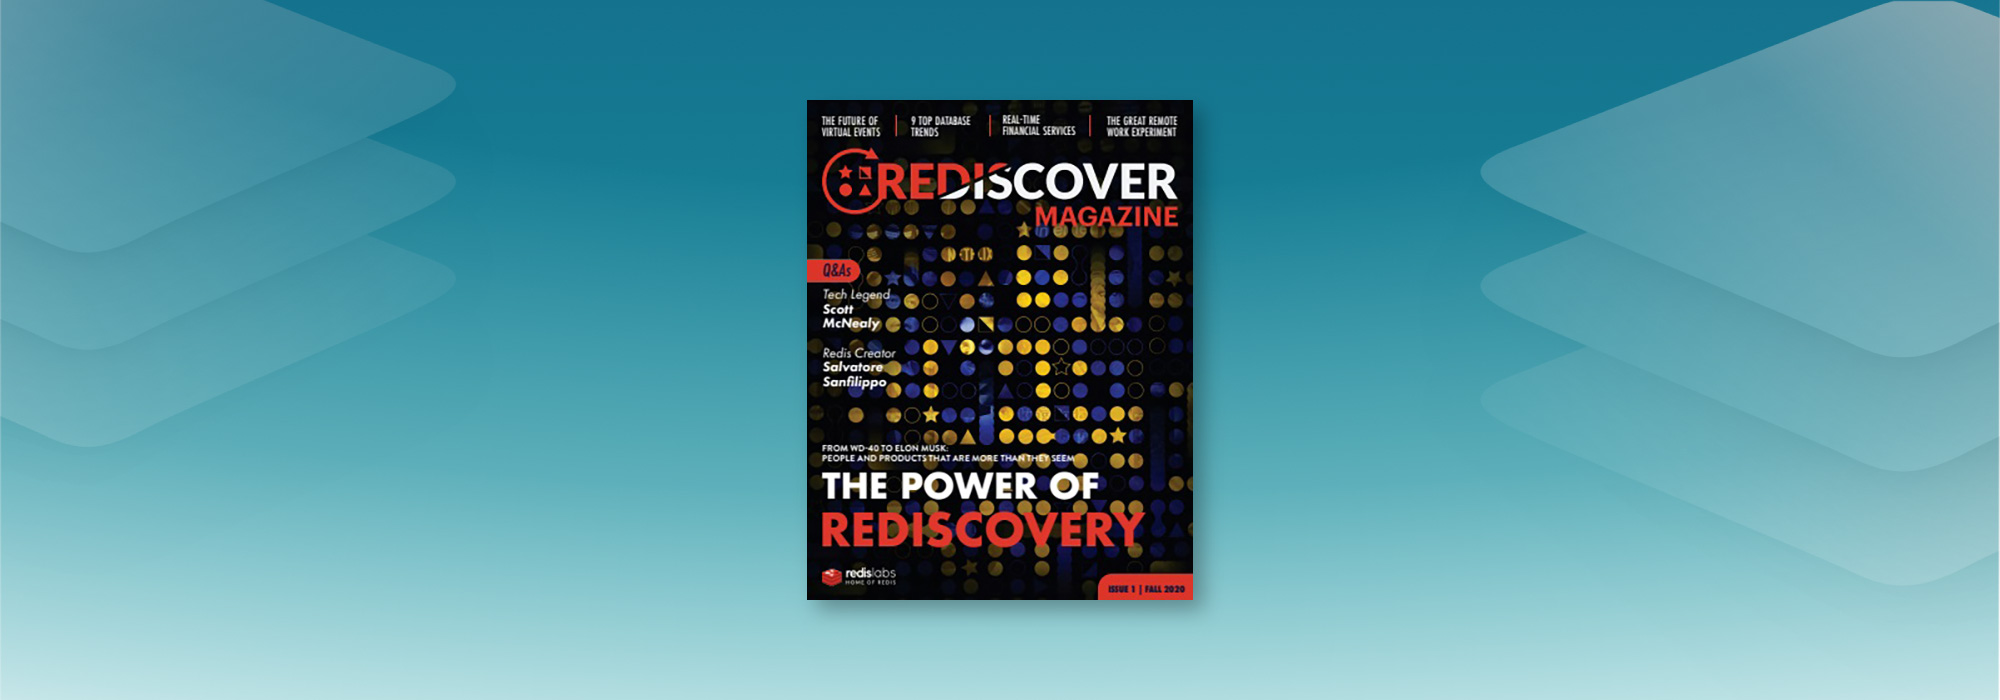 Introducing Rediscover Magazine